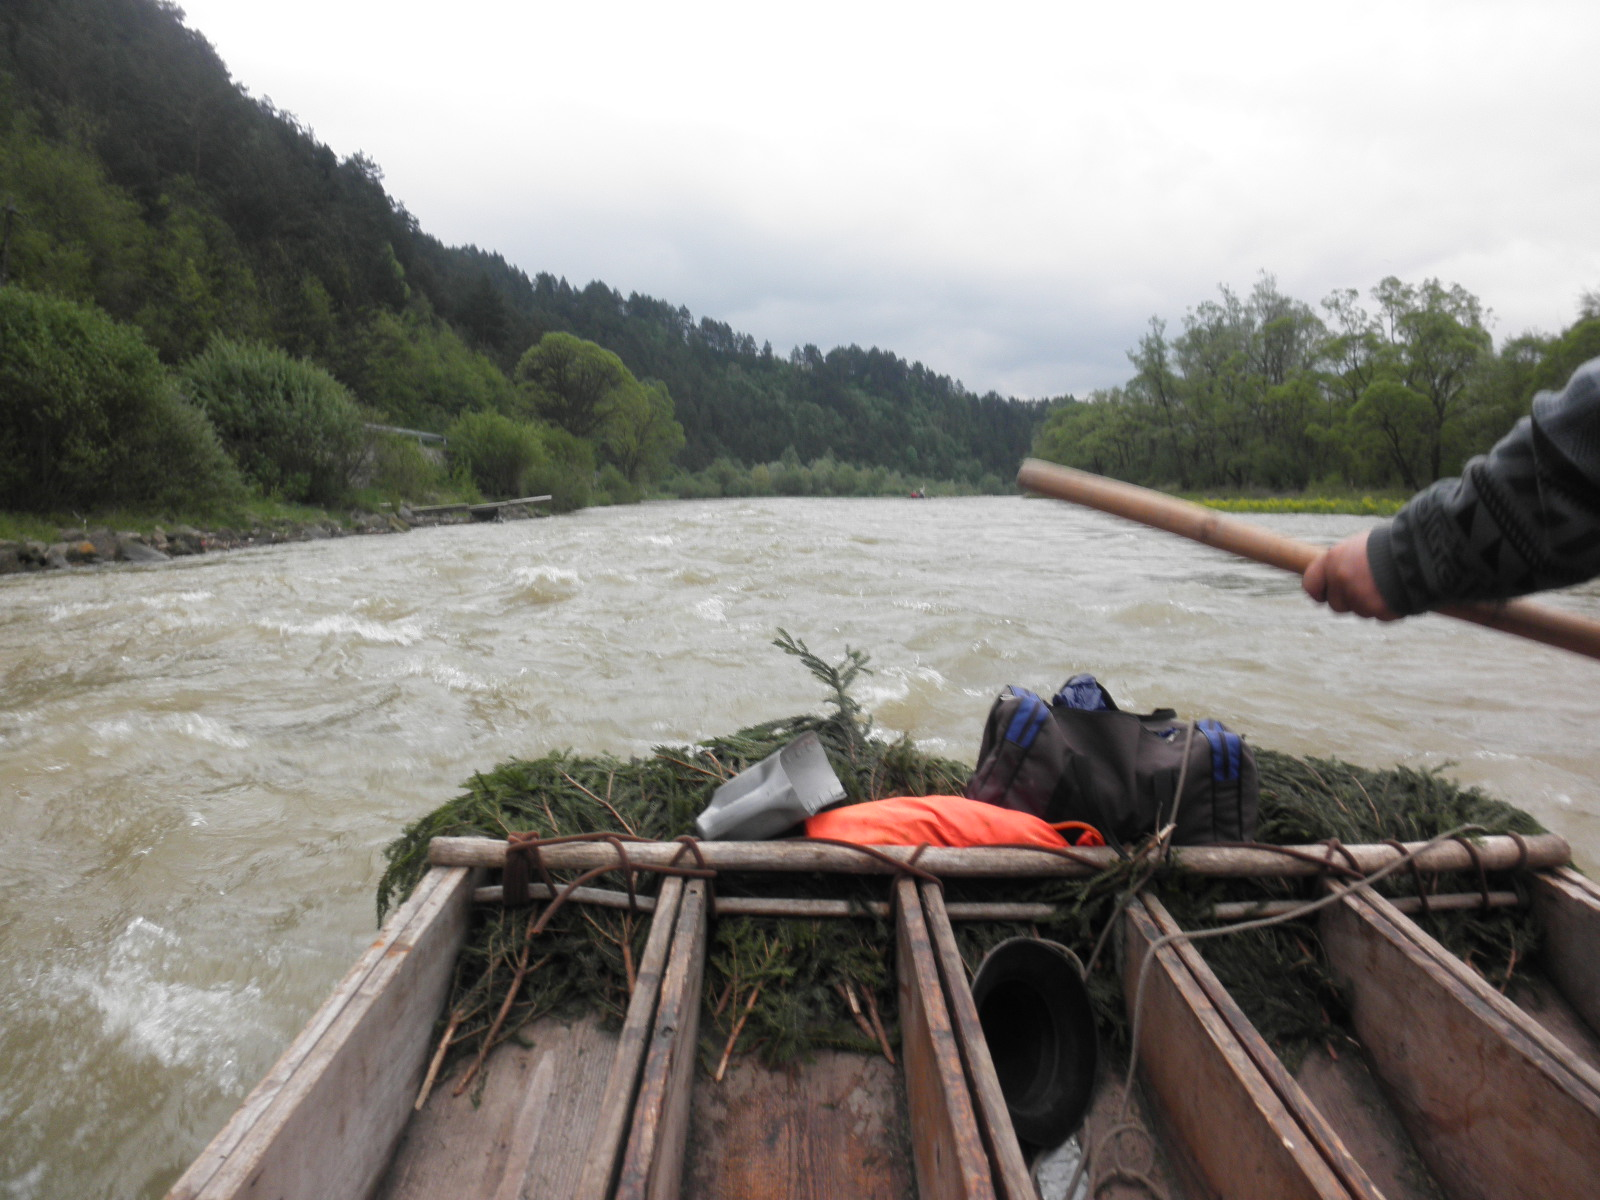 saturday may 15 the dunajec raft ride or splyw nad dunajcem is the last excursion for us it s one of the obligatory things to do when visiting the